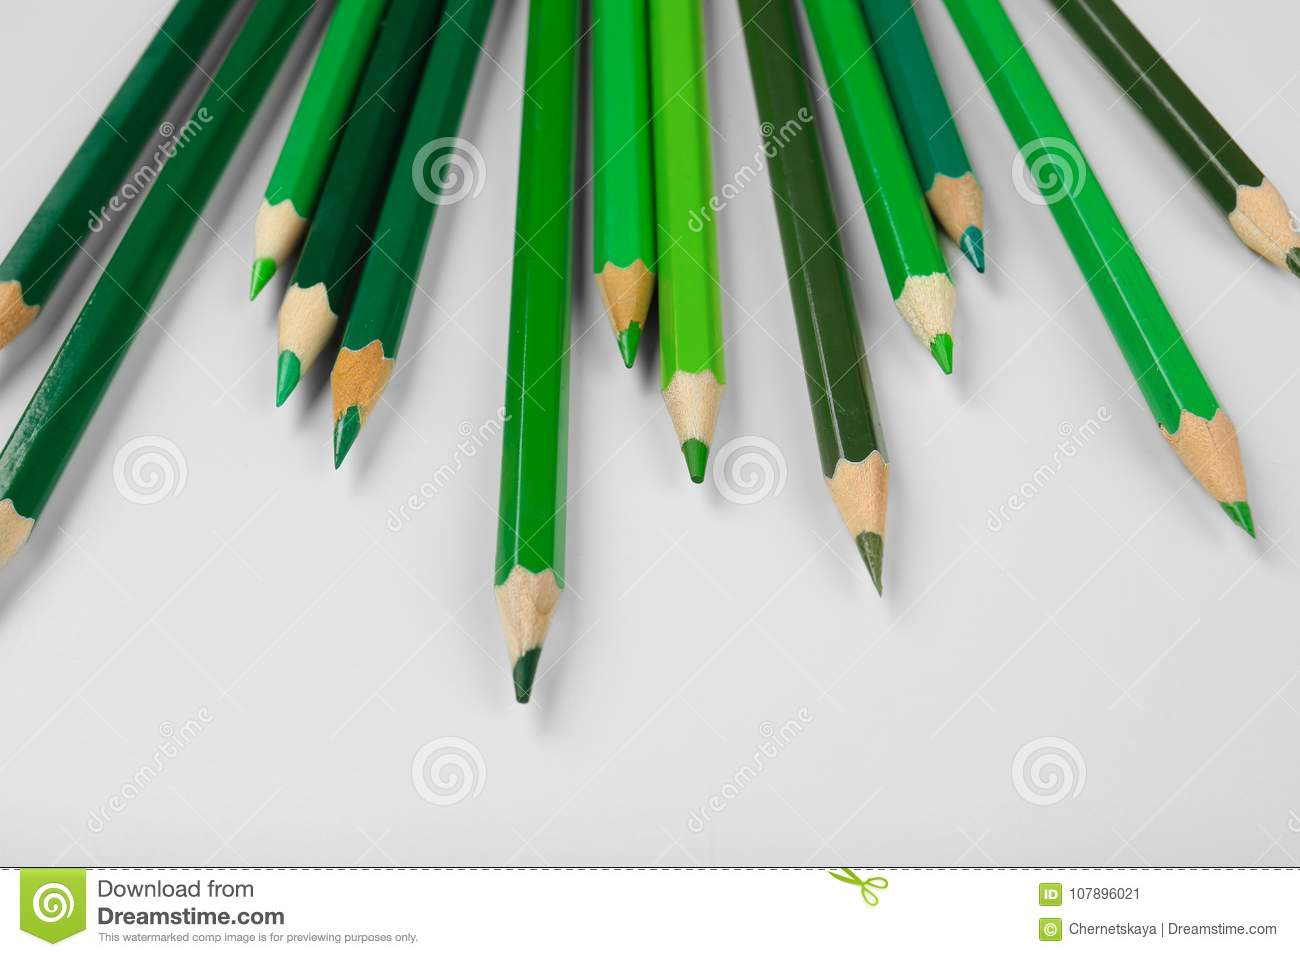 Green pencils of different shades stock image image of hues